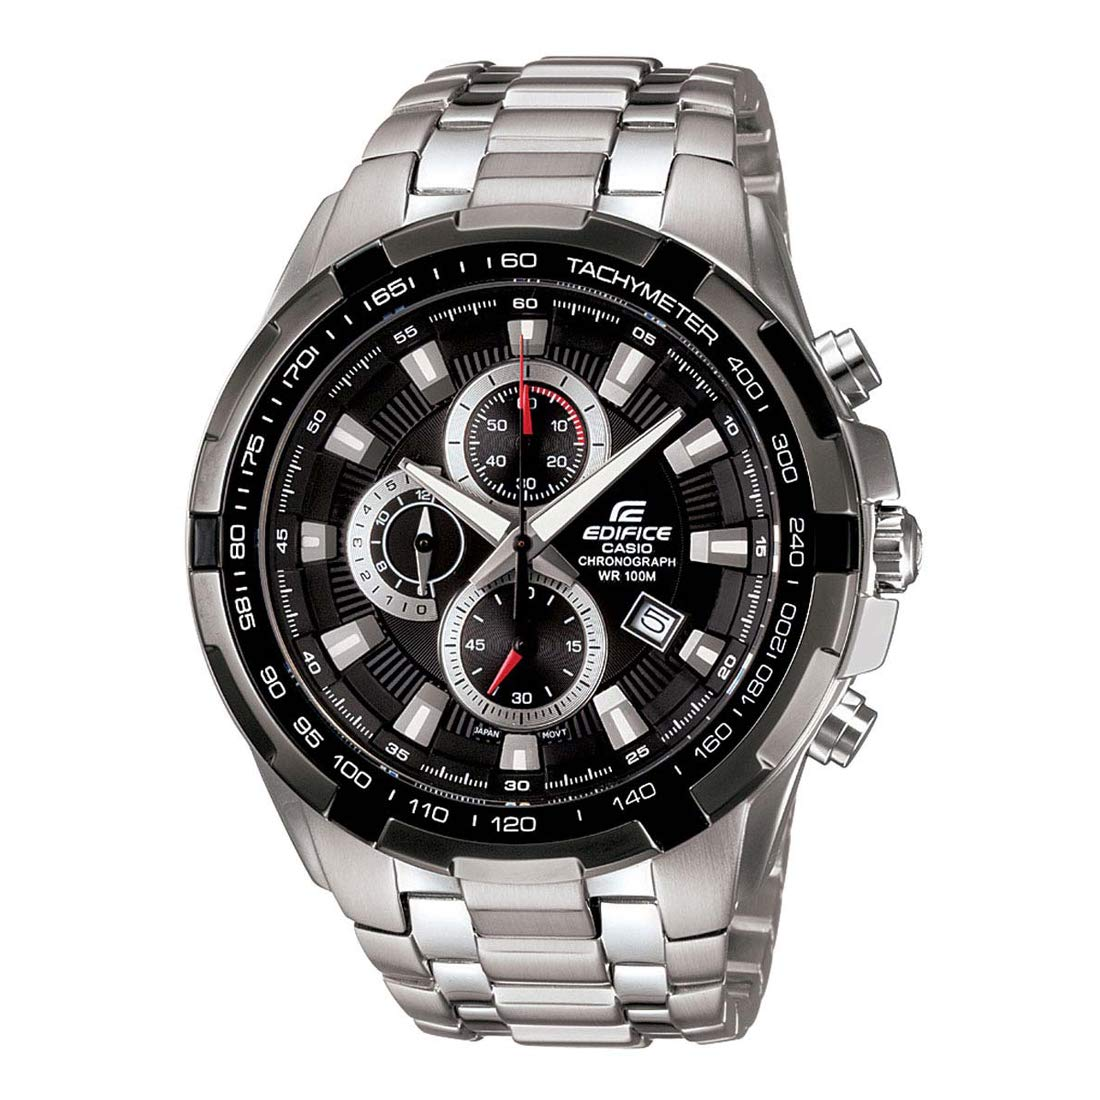 3dd5bfbdf8a Buy Casio Edifice Chronograph Multi-Color Dial Men s Watch - EF-539D-1AVDF  (ED369) Online at Low Prices in India - Amazon.in